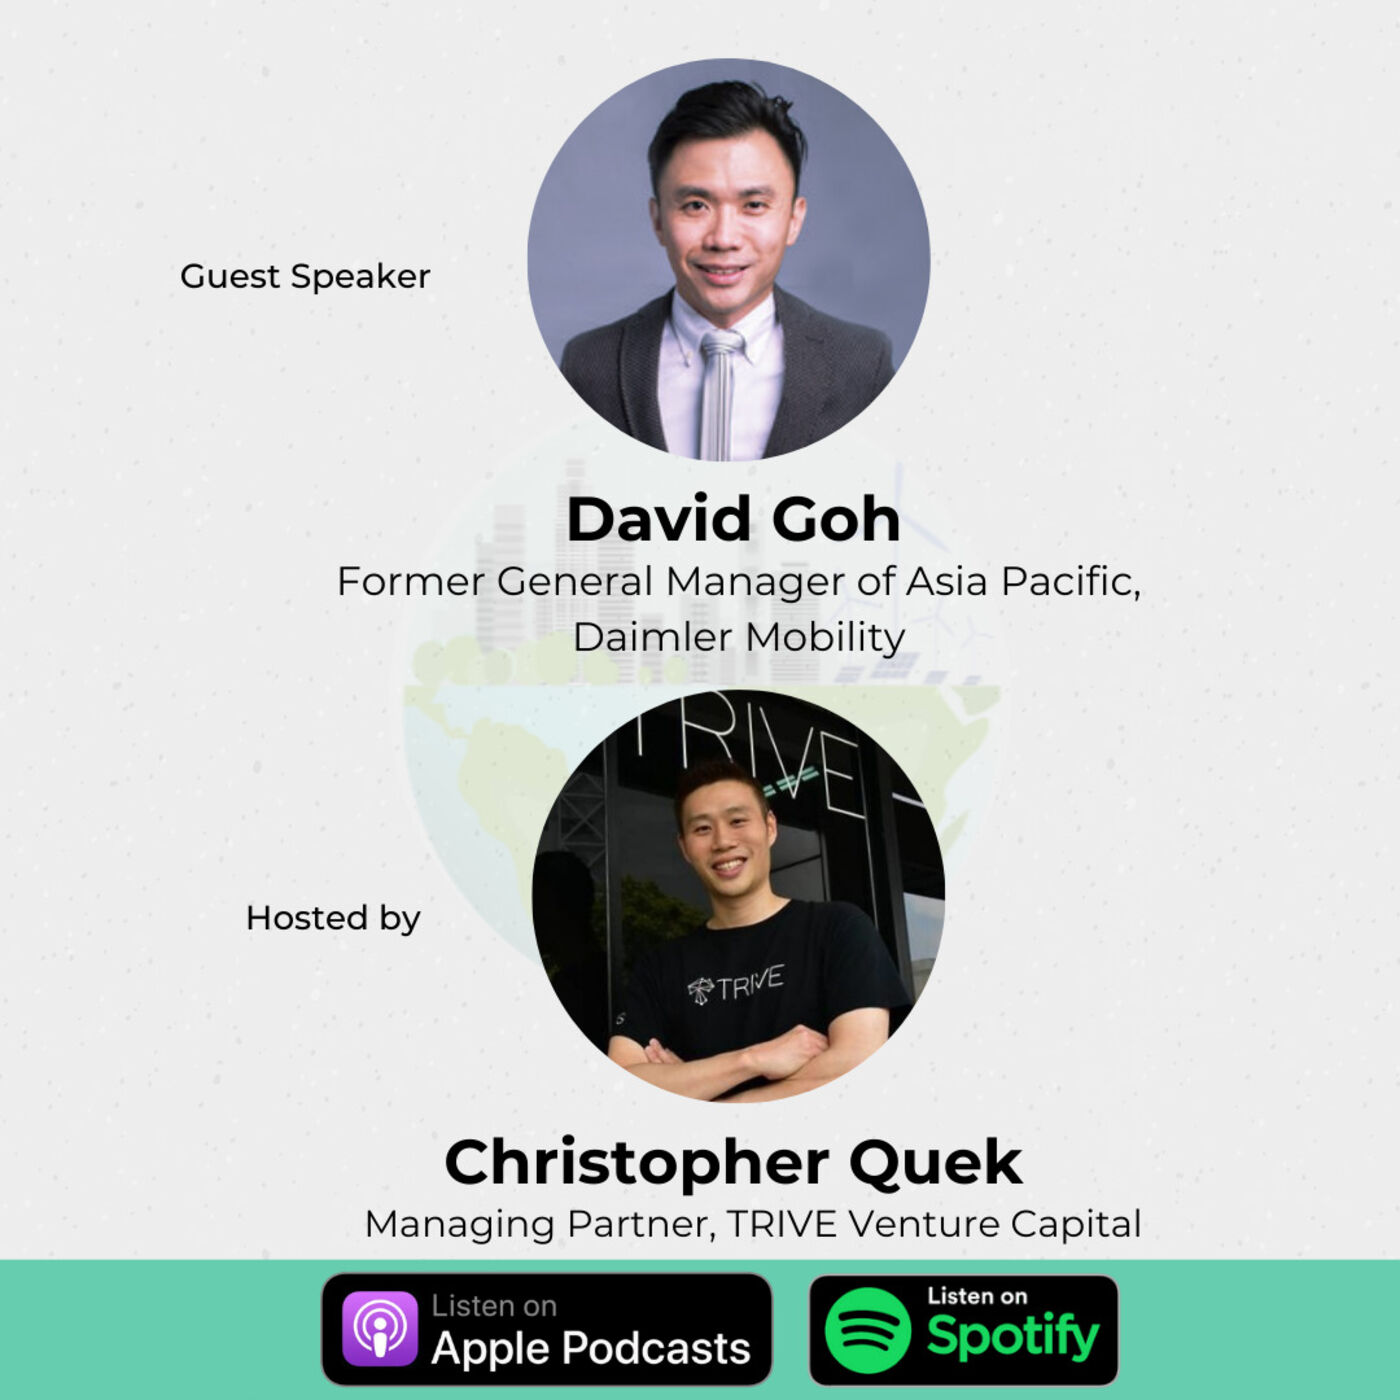 The future of smart cities in Southeast Asia - David Goh, Former APAC GM of Daimler Mobility